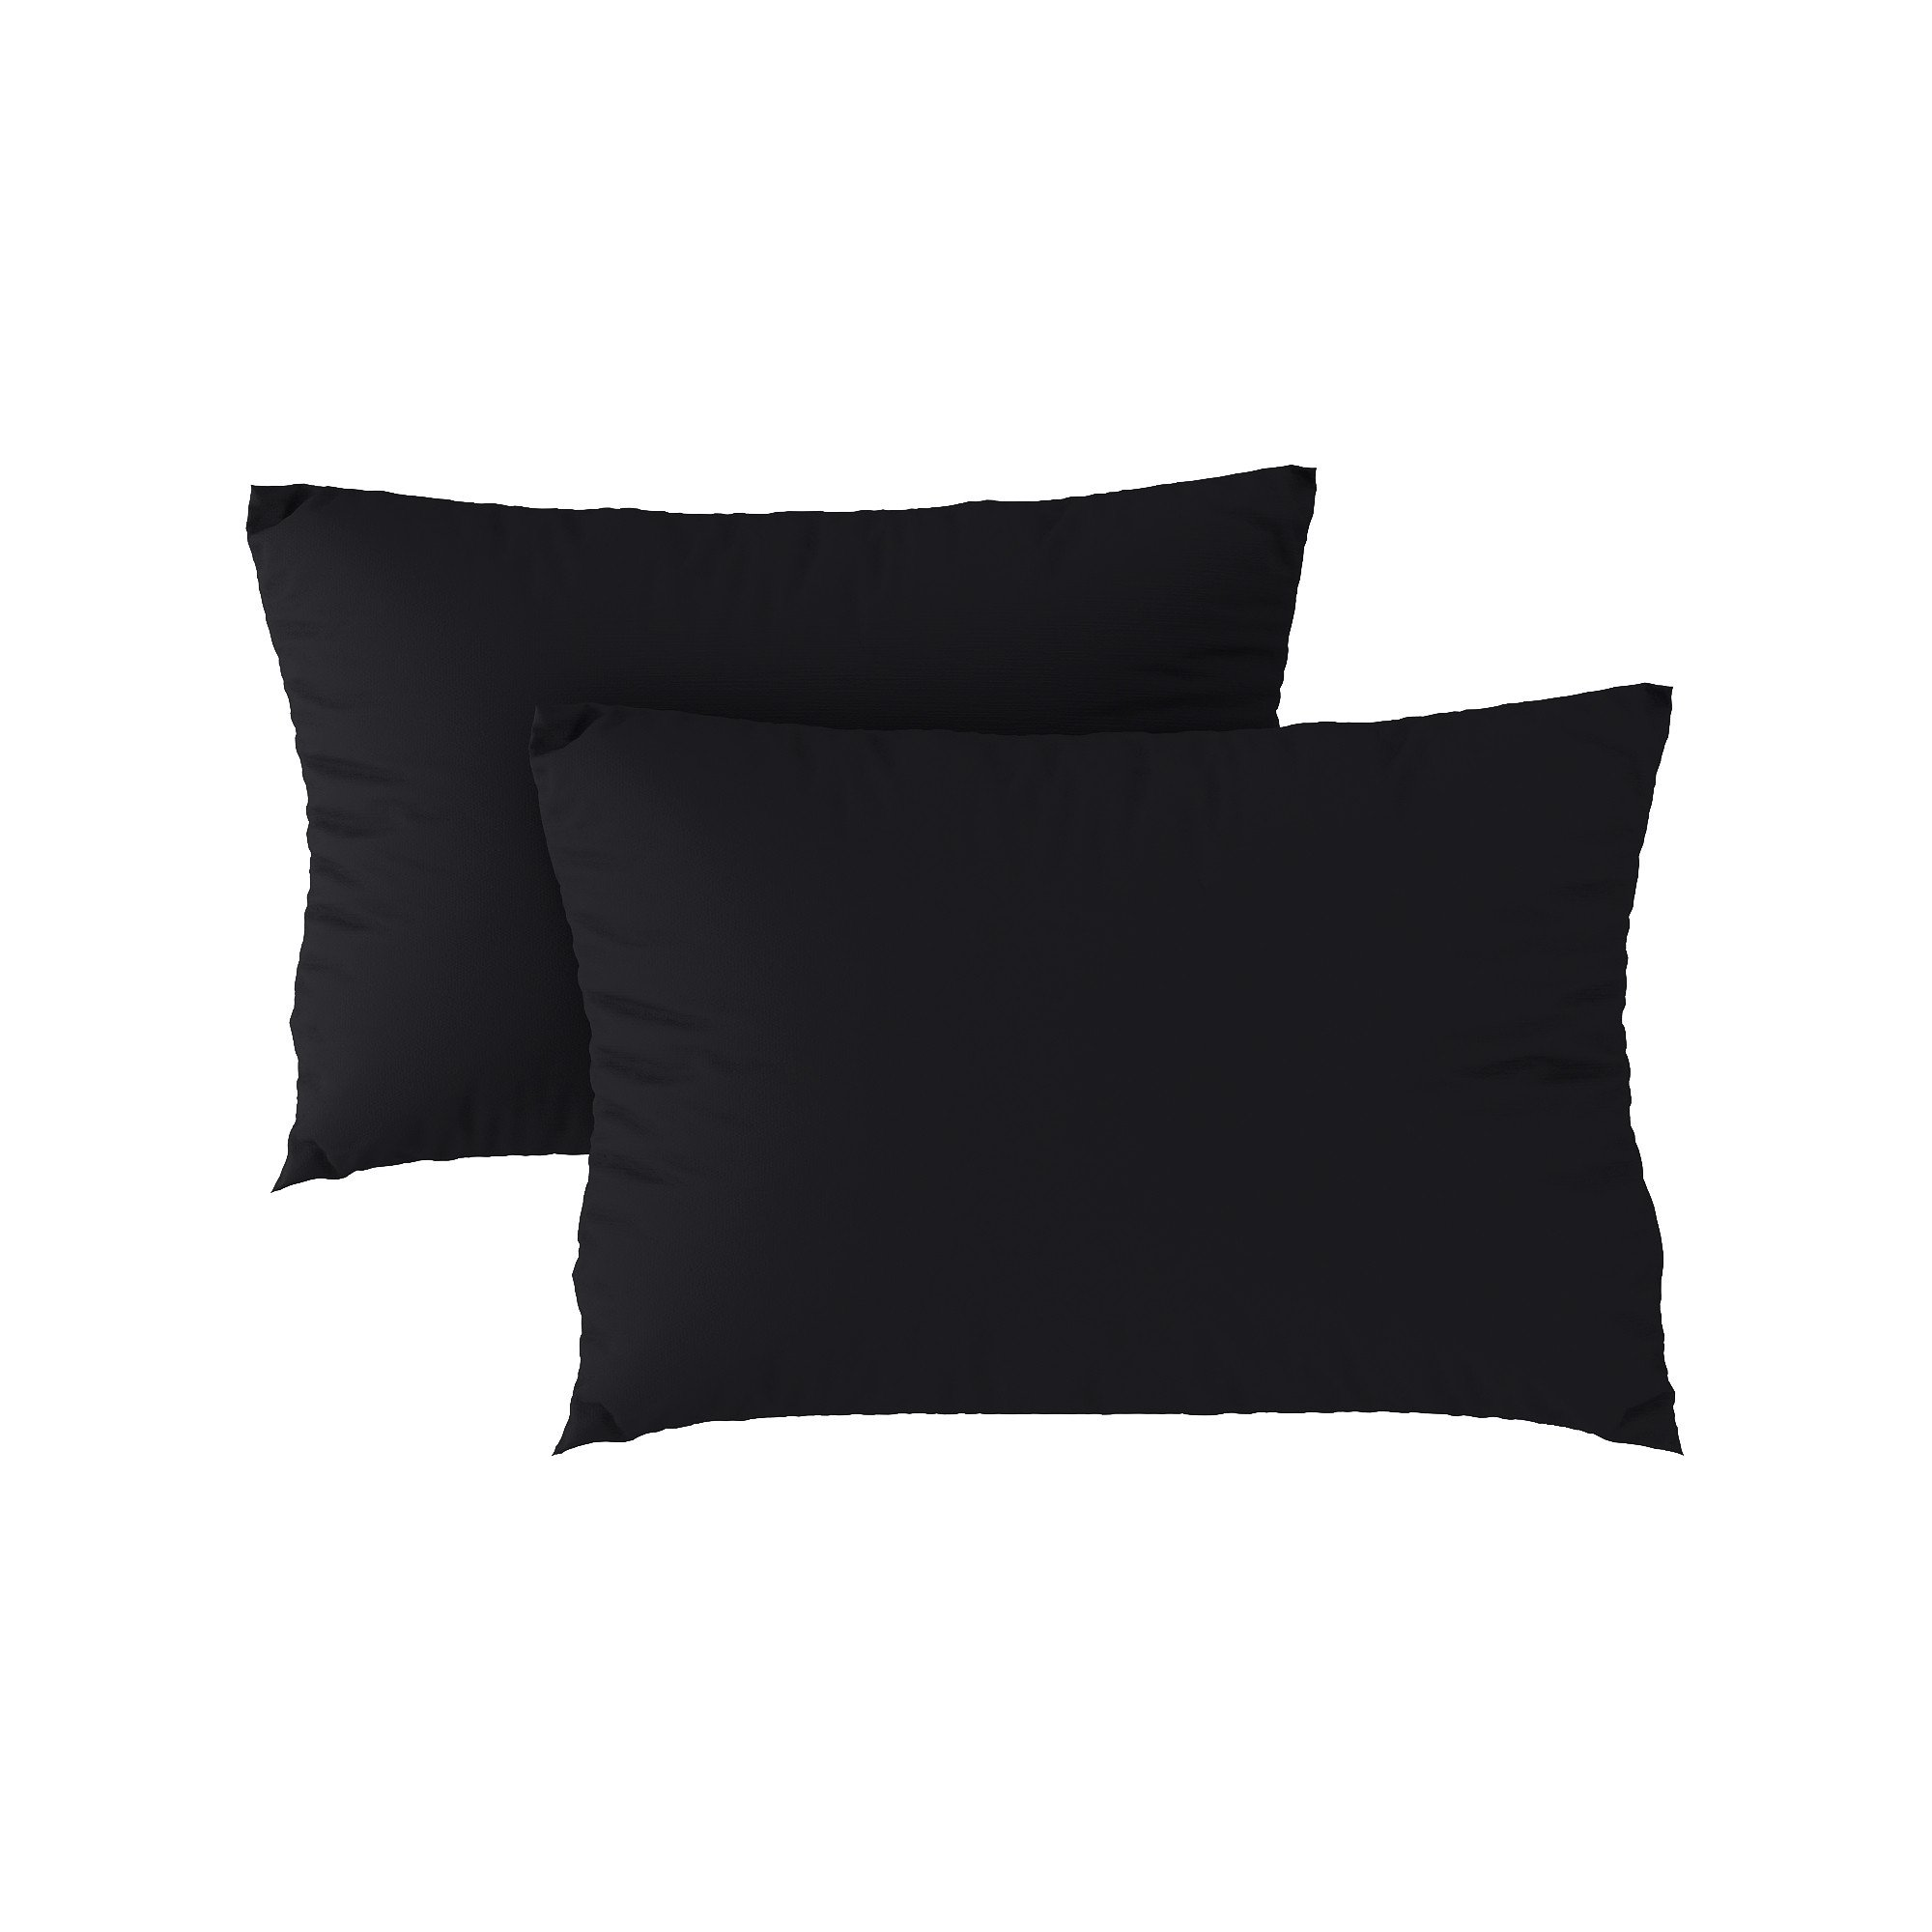 Standard pillow case 24 Black (2pcs)